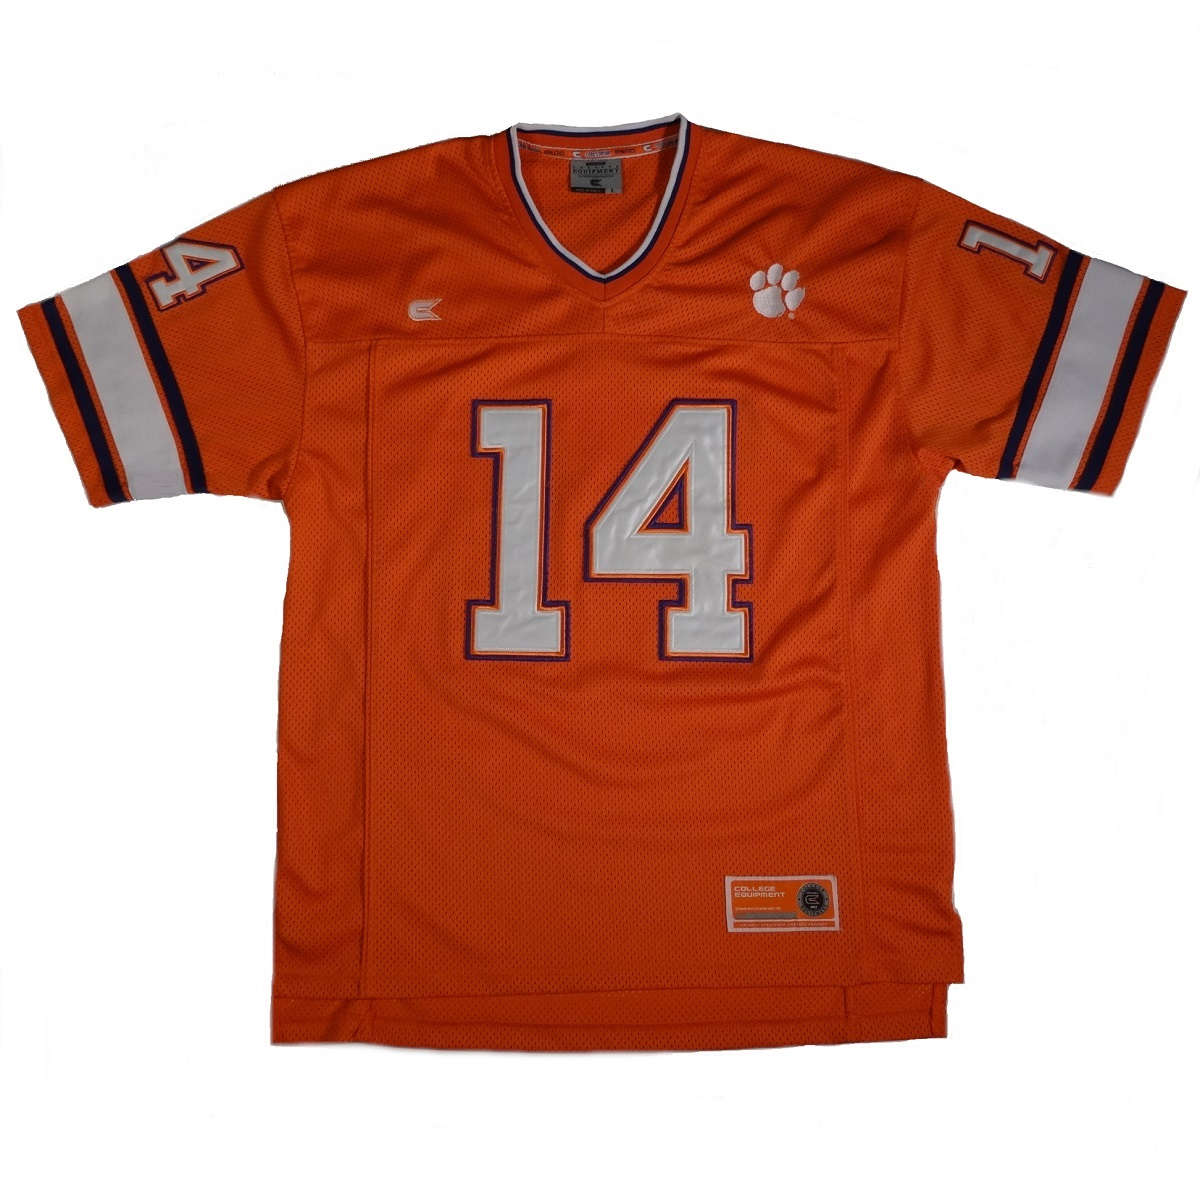 clemson tigers football jersey number 14 front of jersey